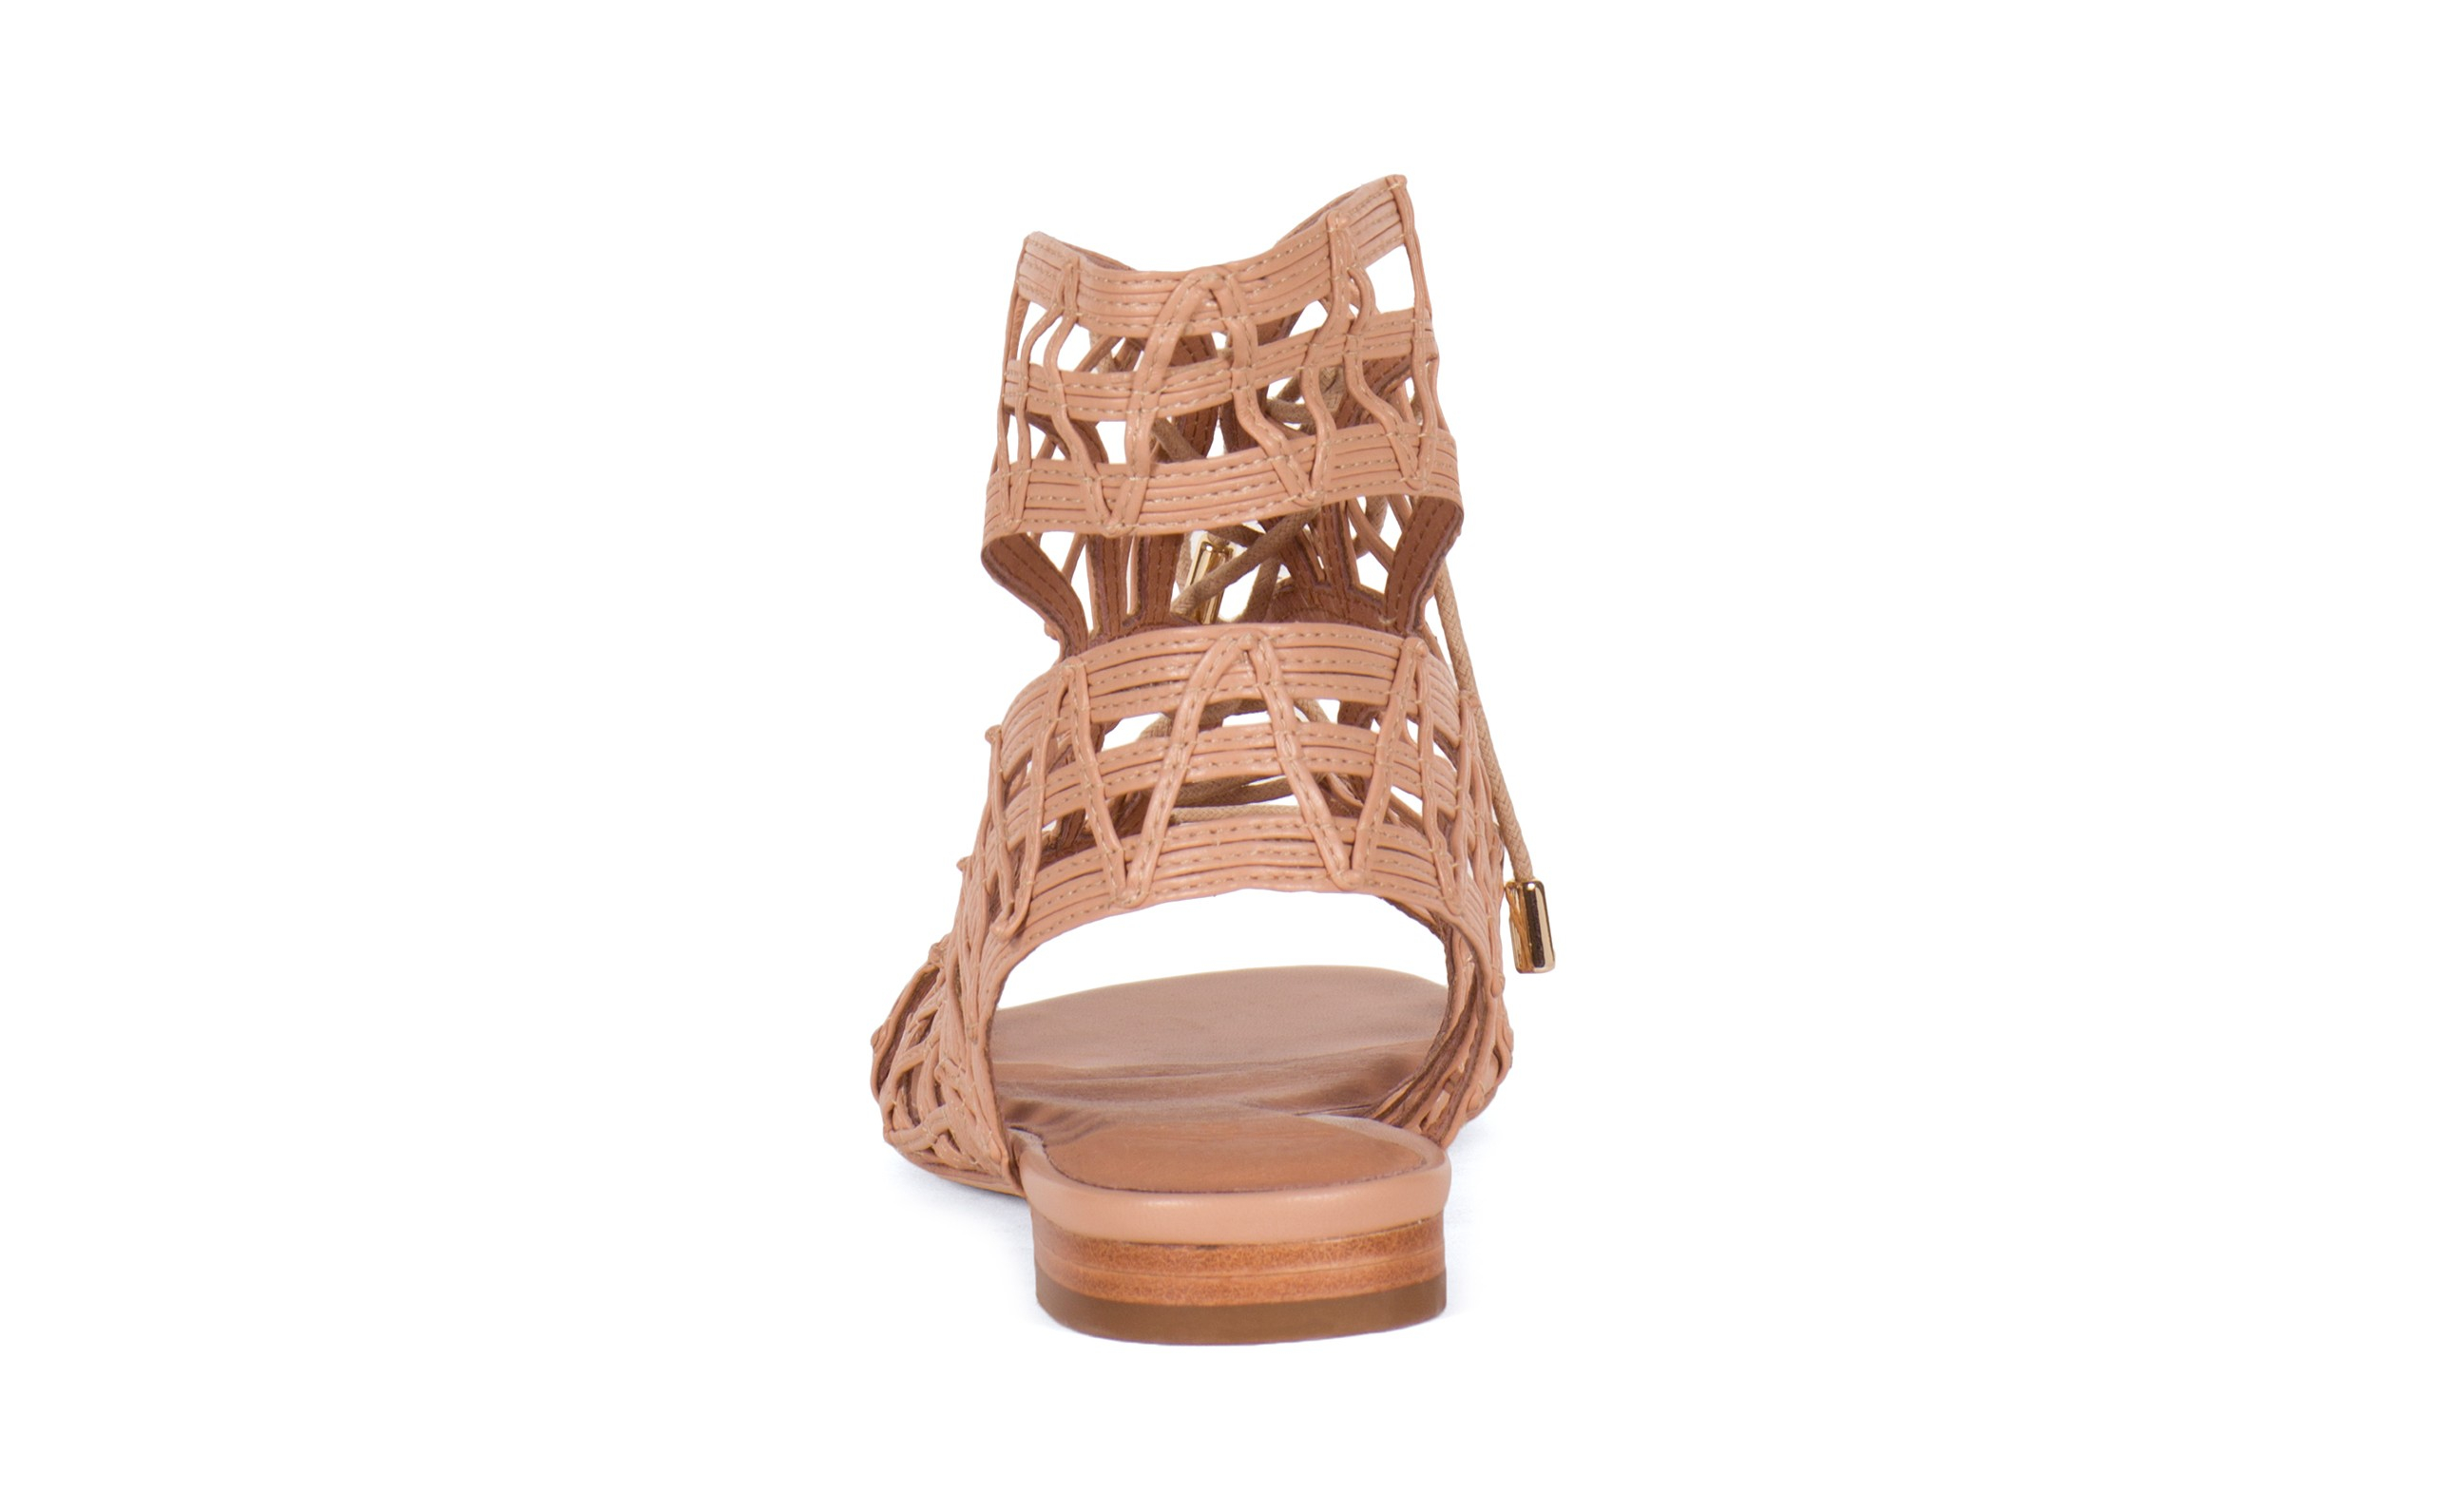 f36c0ba91a6f Lyst - Joie Renee Sandals in Natural